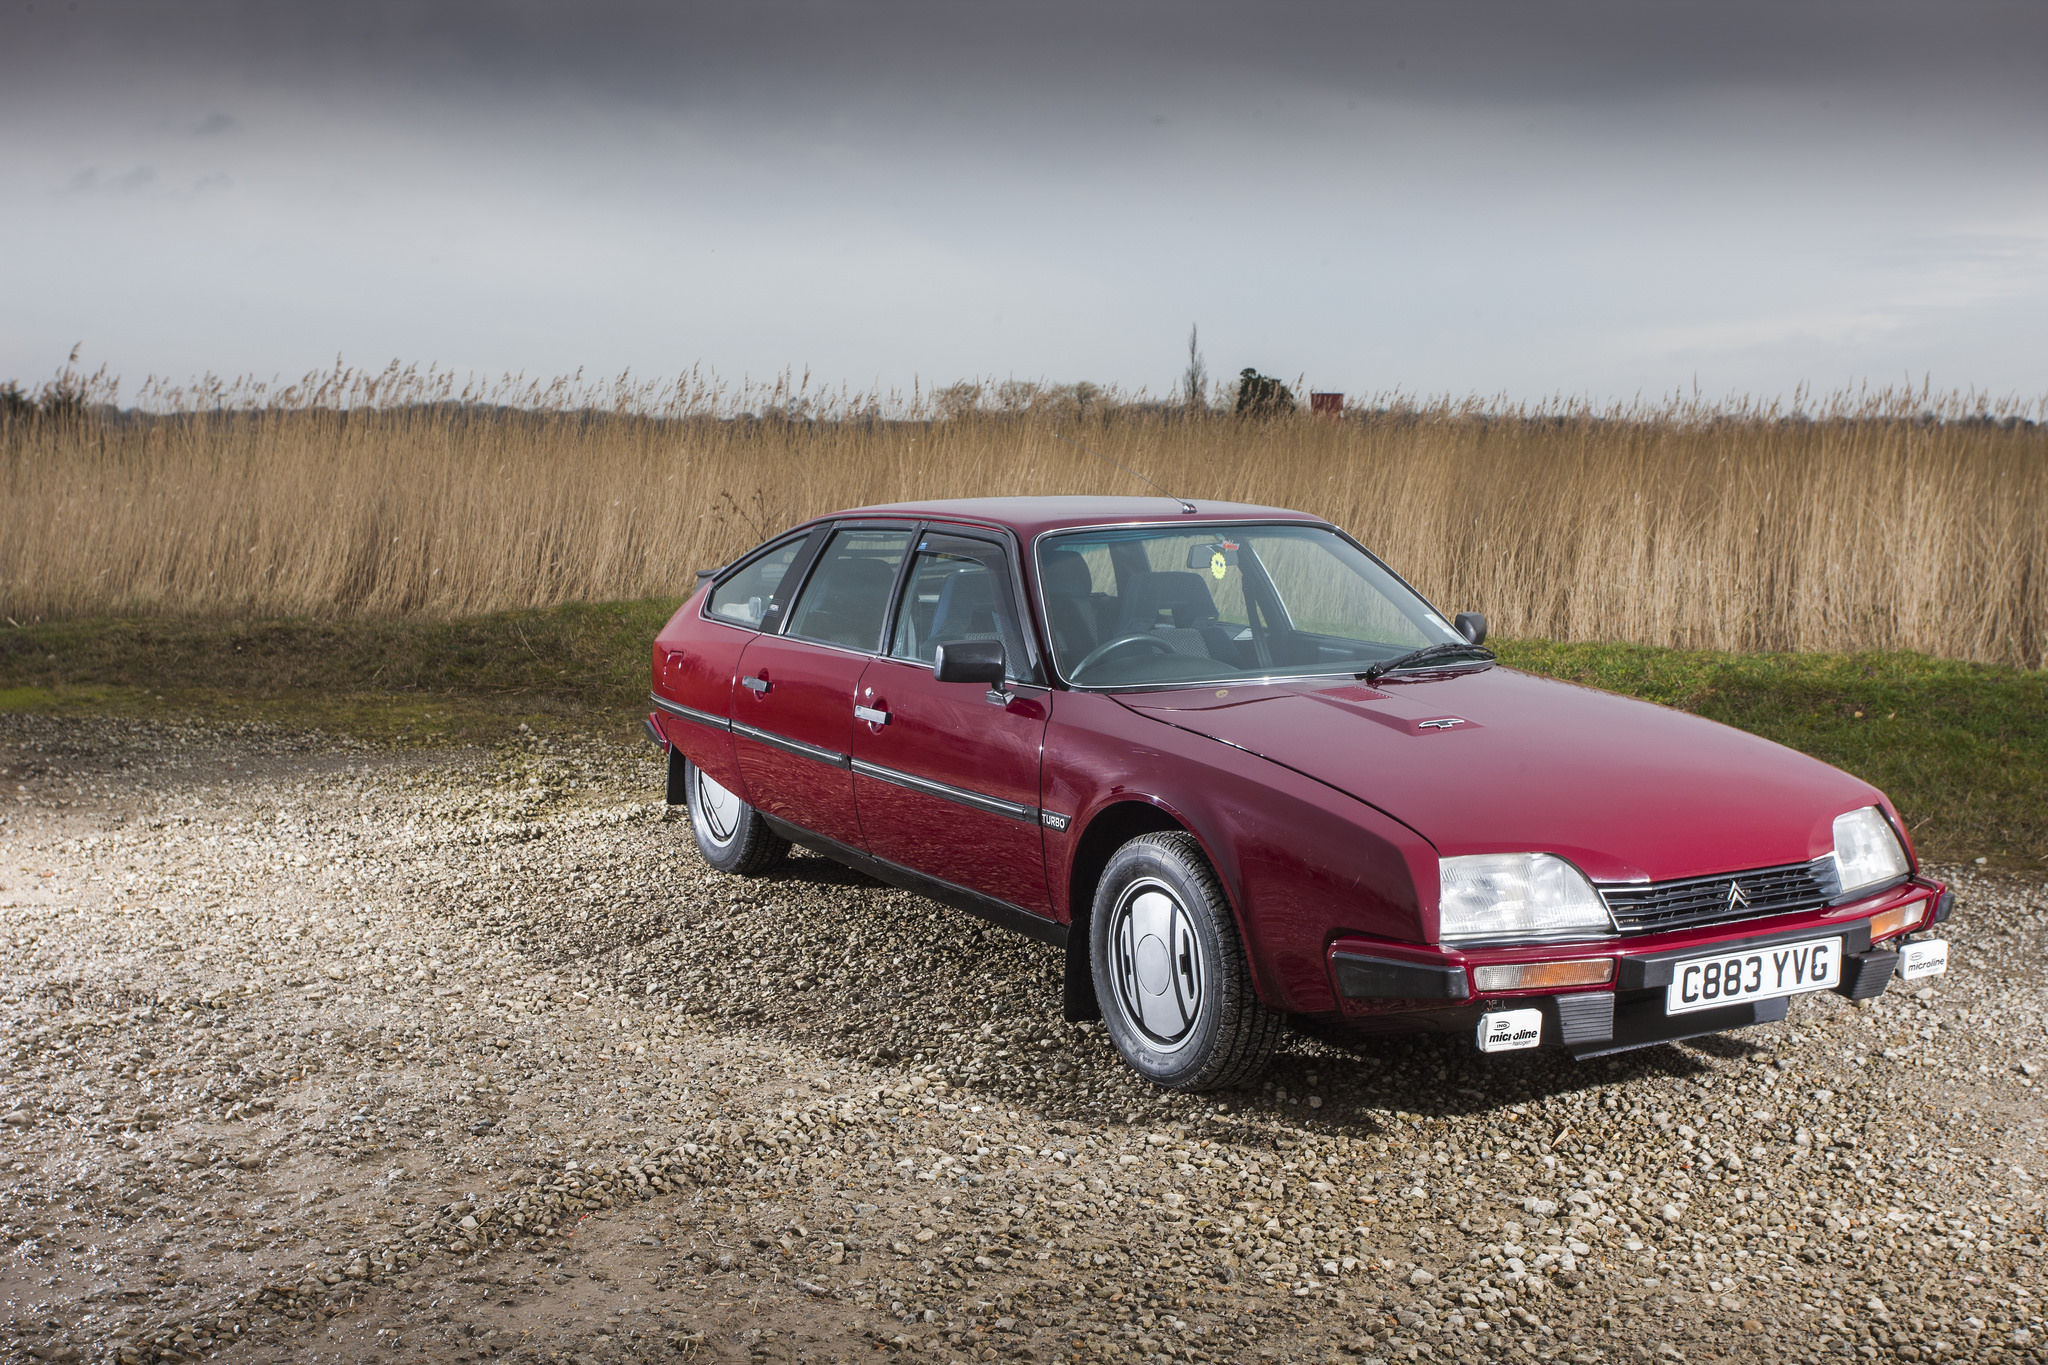 1984 Citroen CX GTi Turbo series 1